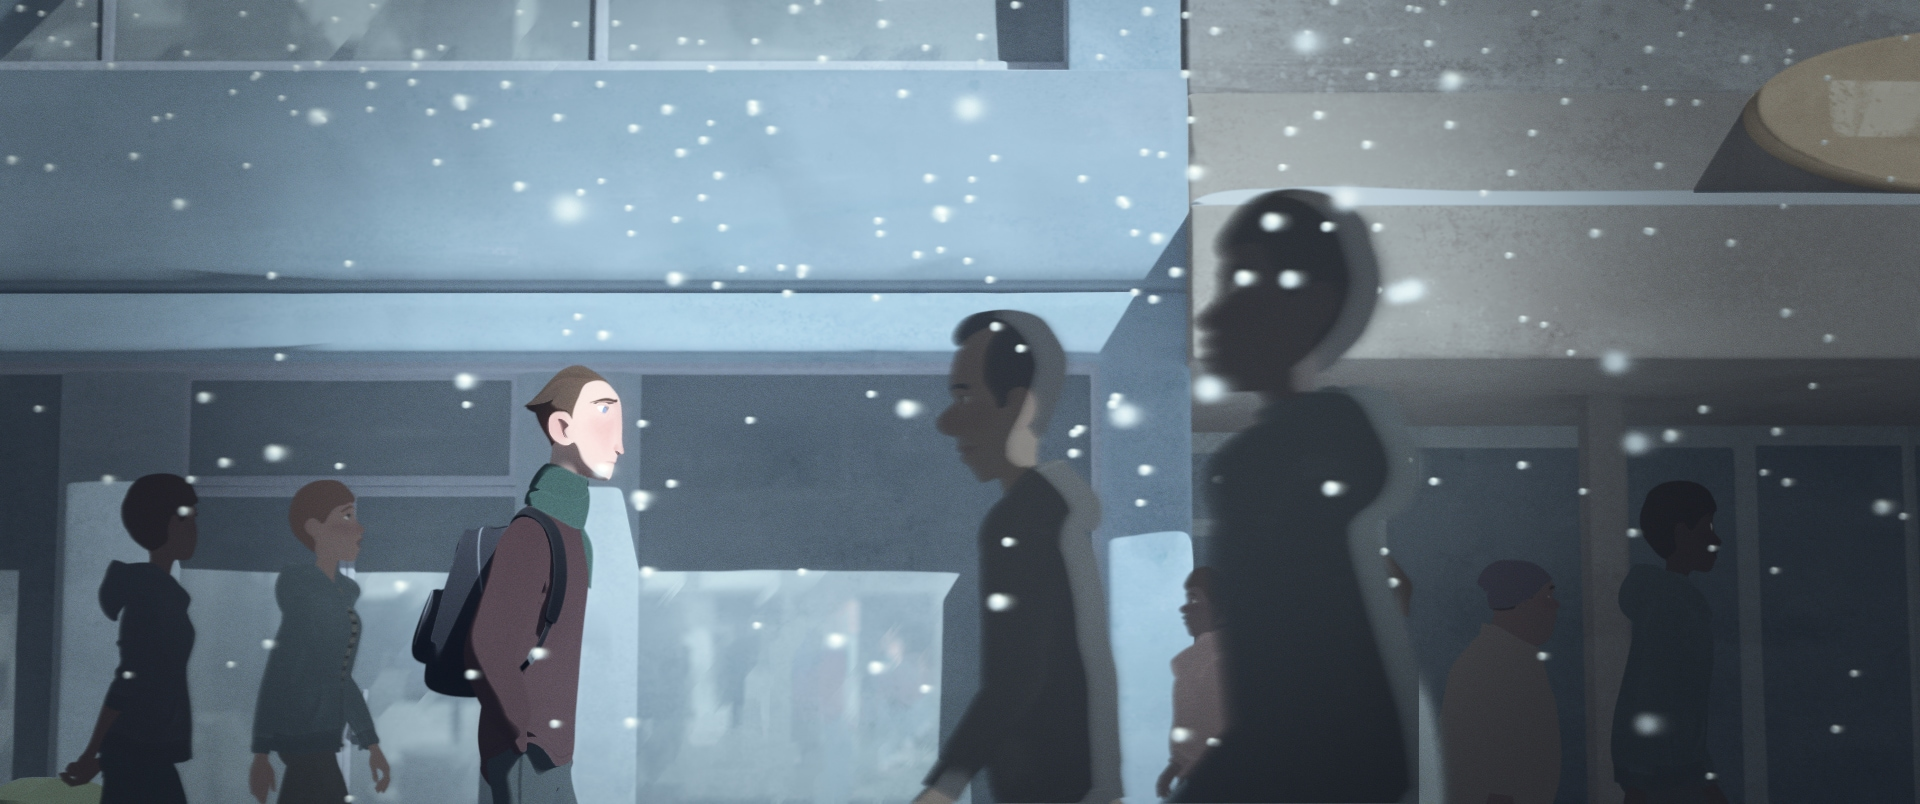 Character from Going Home short walking in the snow